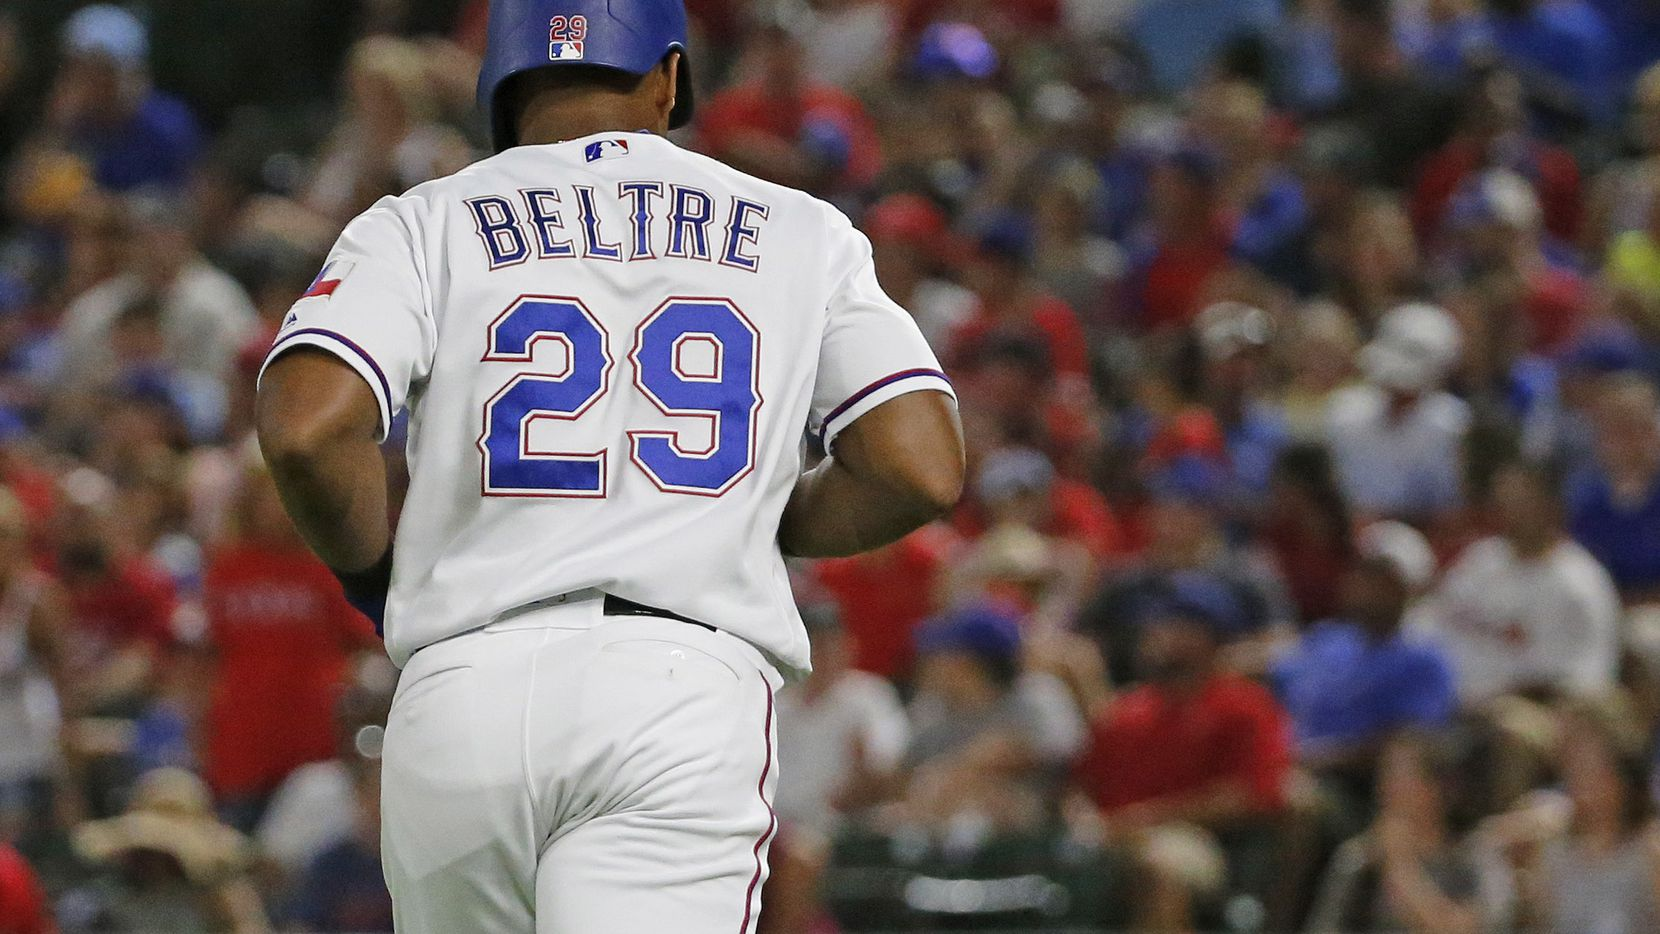 Texas Rangers designated hitter Adrian Beltre (29) jogs off the field during the Chicago White Sox vs. the Texas Rangers major league baseball game at Globe Life Park in Arlington, Texas on Saturday, June 30, 2018. (Louis DeLuca/The Dallas Morning News)